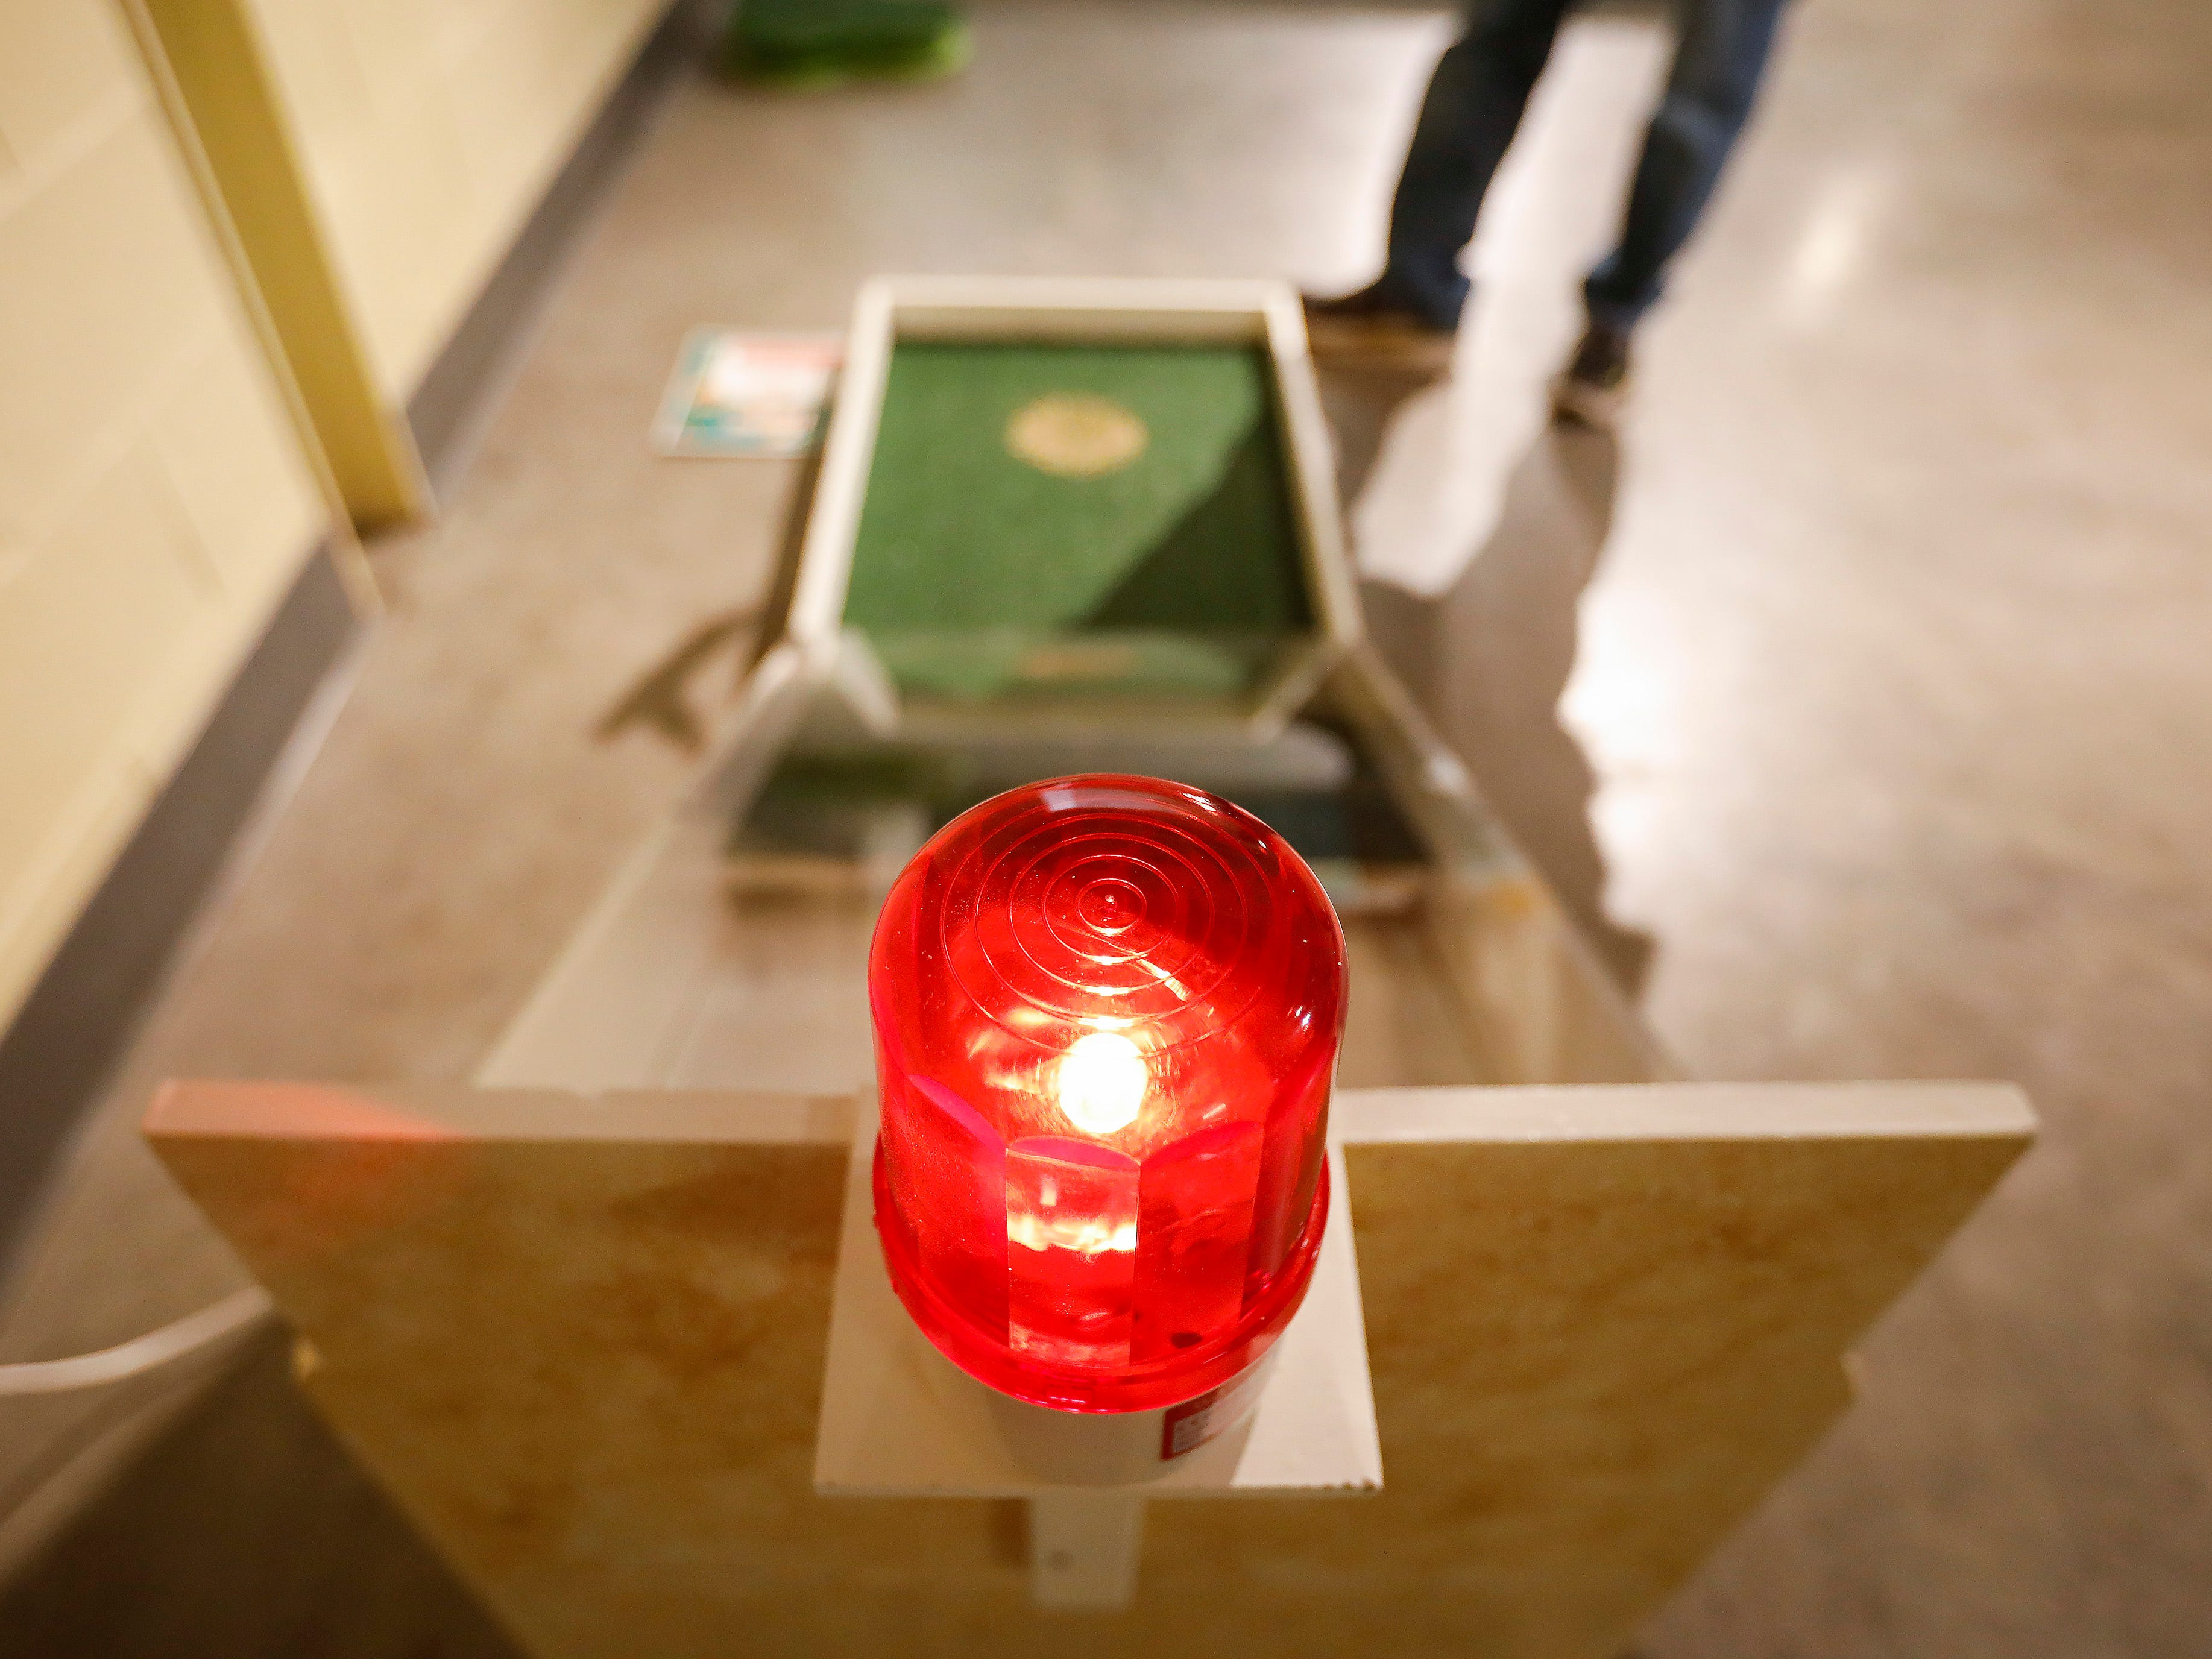 Steve Pokin sets off the alarm after sinking a hole-in-one on the final hole of the new 9-hole indoor miniature golf course at the Discovery Center. The new exhibit opens to the public on Sunday, March 31, 2019.